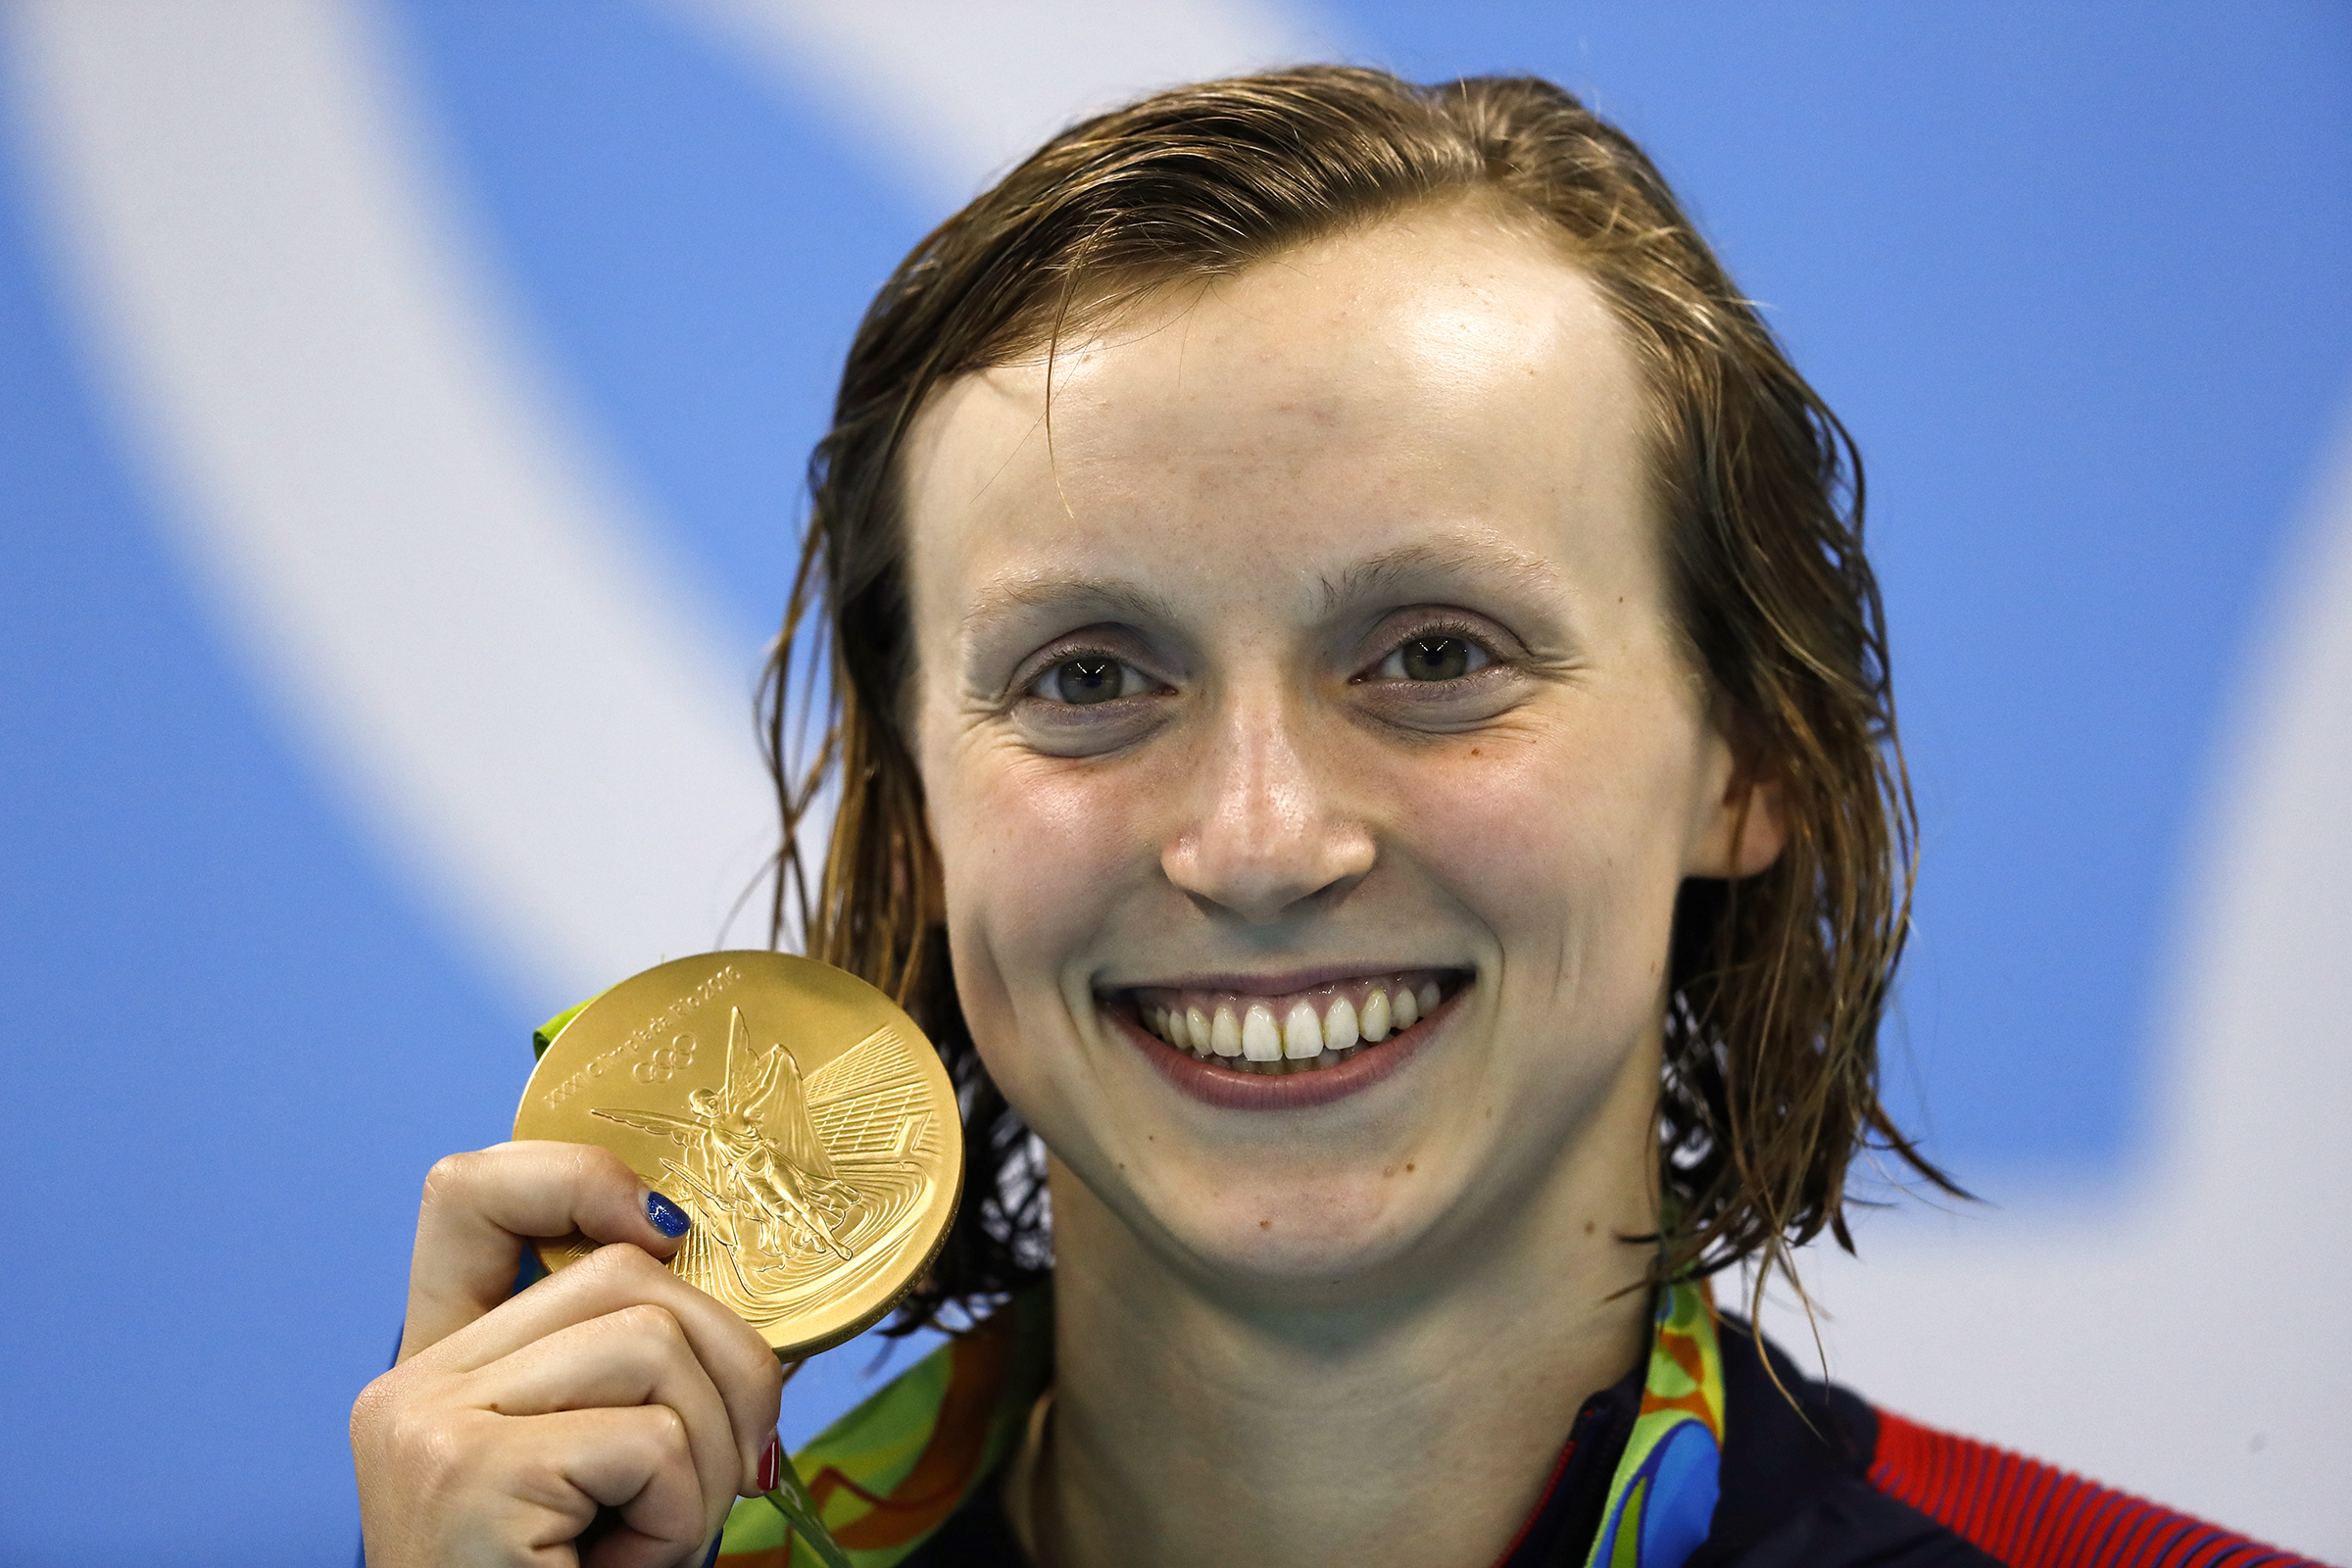 USA's Katie Ledecky poses on the podium with her gold medal after she won the Women's 200m Freestyle Final during the swimming event at the Rio 2016 Olympic Games at the Olympic Aquatics Stadium in Rio de Janeiro on August 9, 2016.   / AFP PHOTO / Odd Andersen